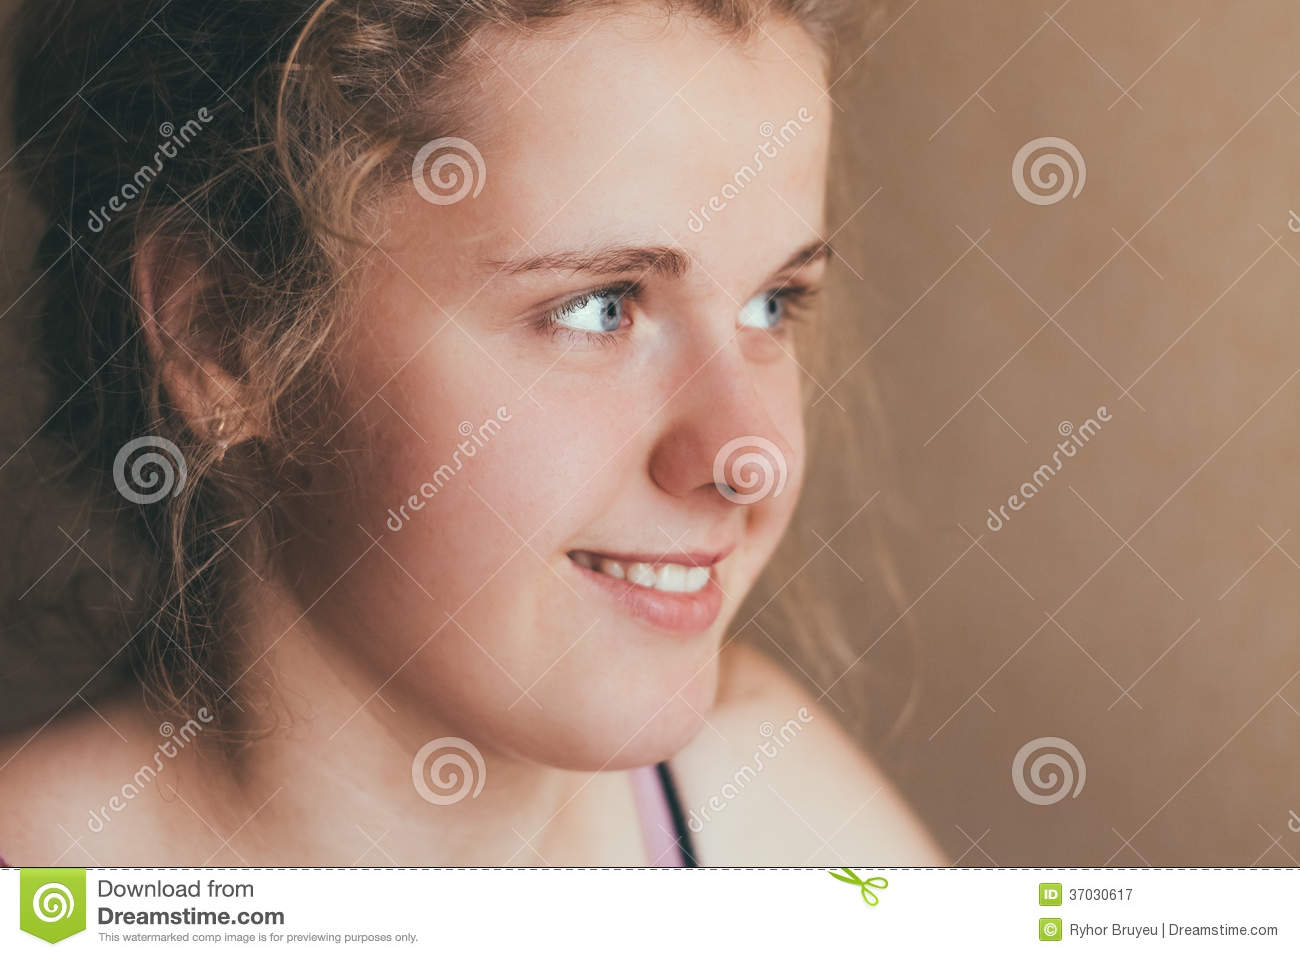 Smiling Teen Girl stock image  Image of beauty, close - 37030617